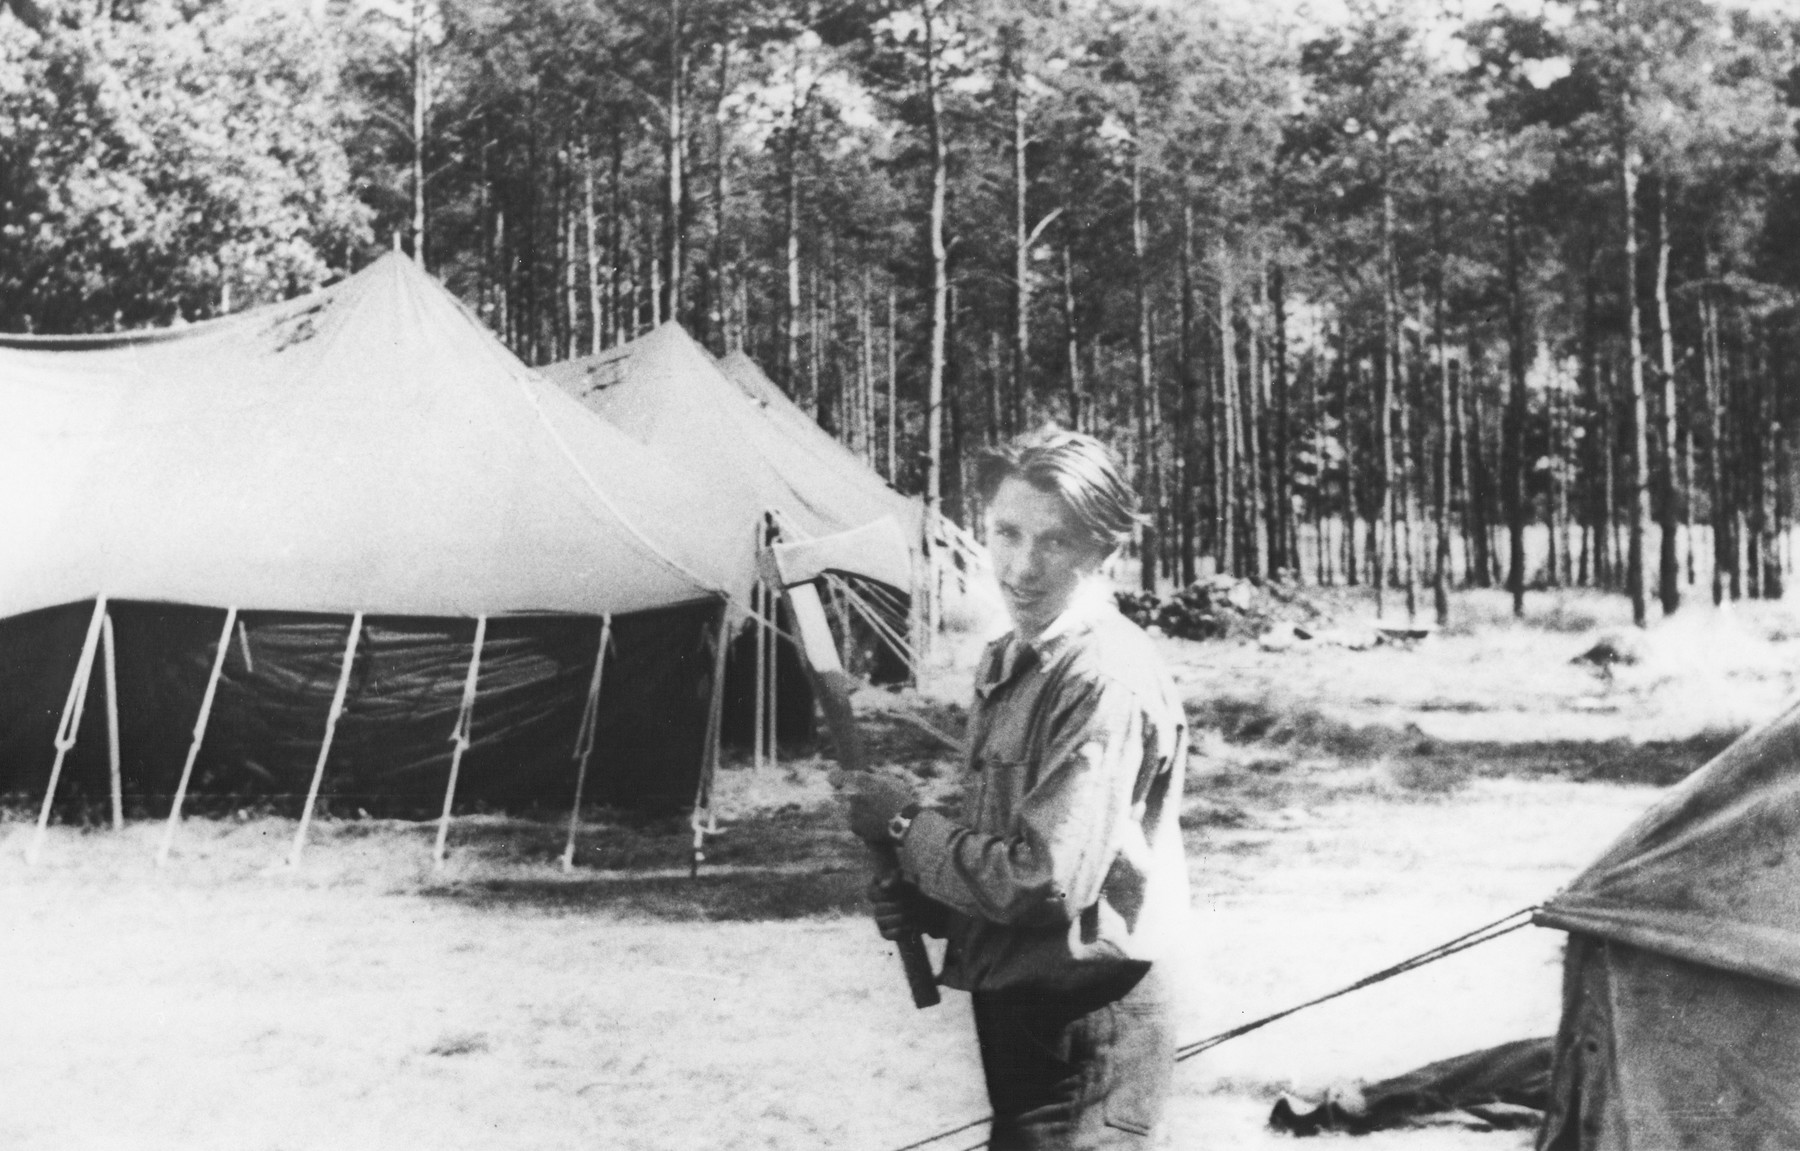 A Jewish youth poses with an ax at a summer camp for Jewish DP children in the Grunewald Forest.